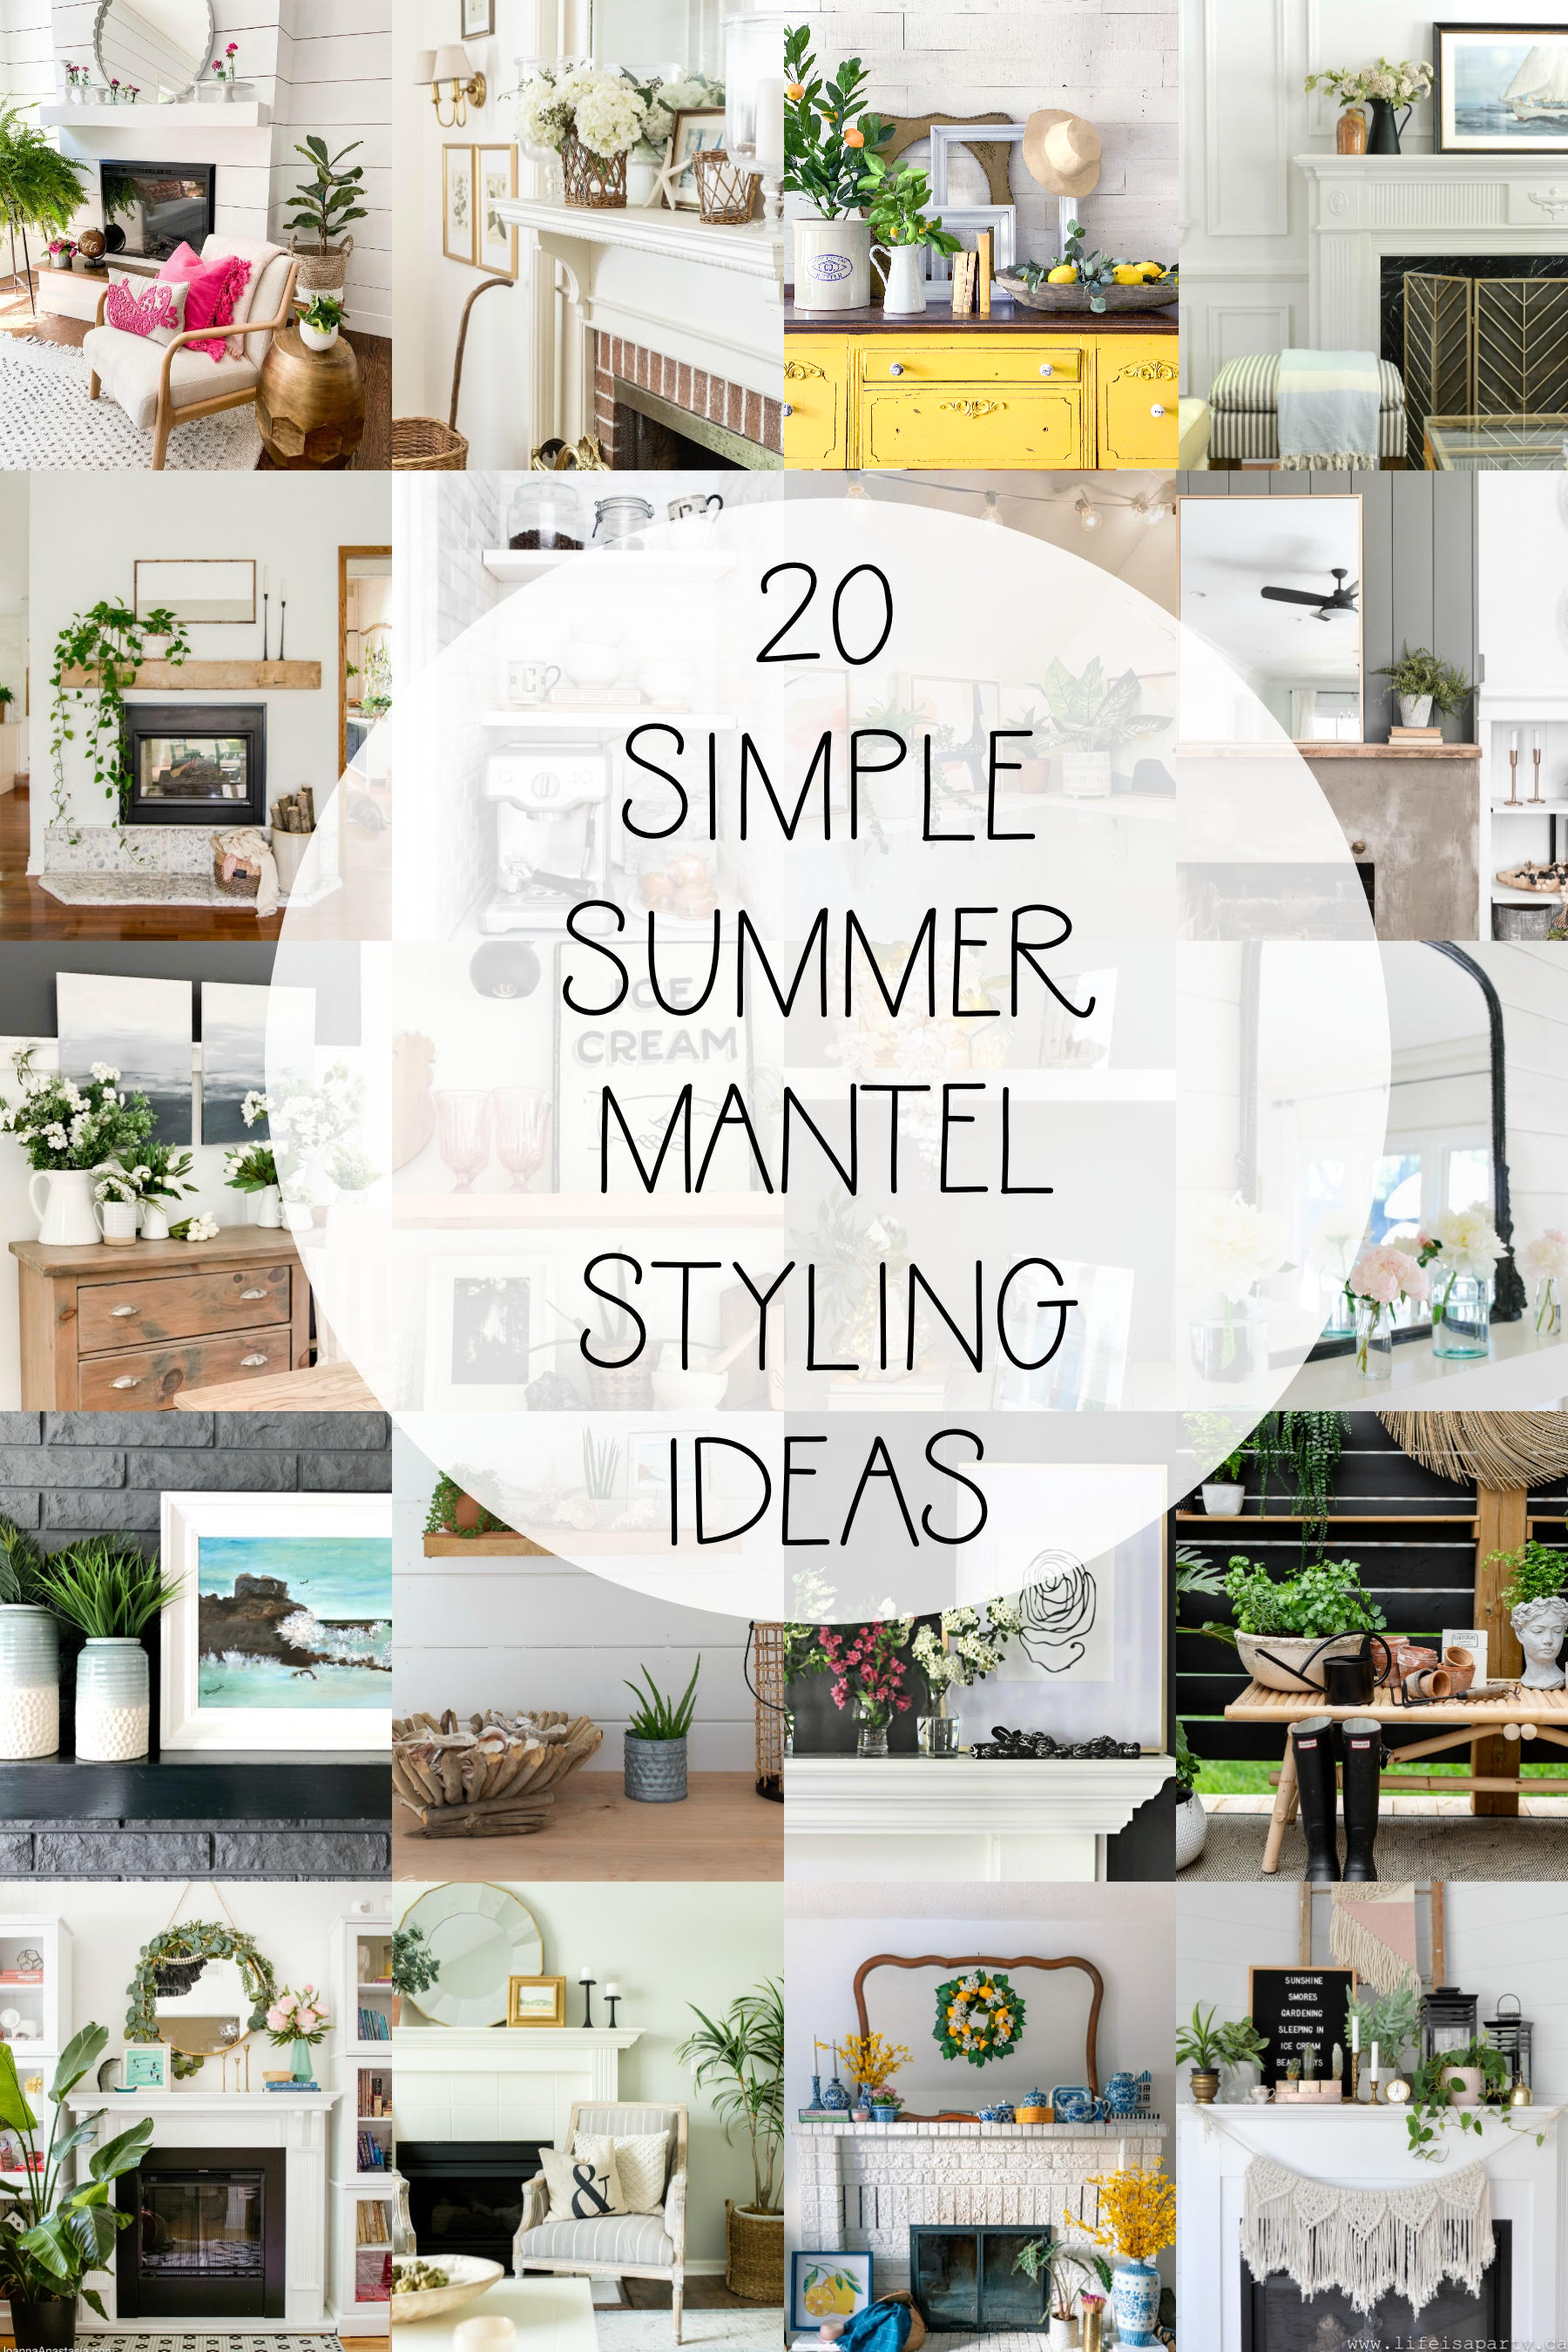 15 SIMPLE Ways to Style YOUR Mantel or Entryway for SUMMER! 🌞 #summerdecoration #summerdecor #homedecor #summertime